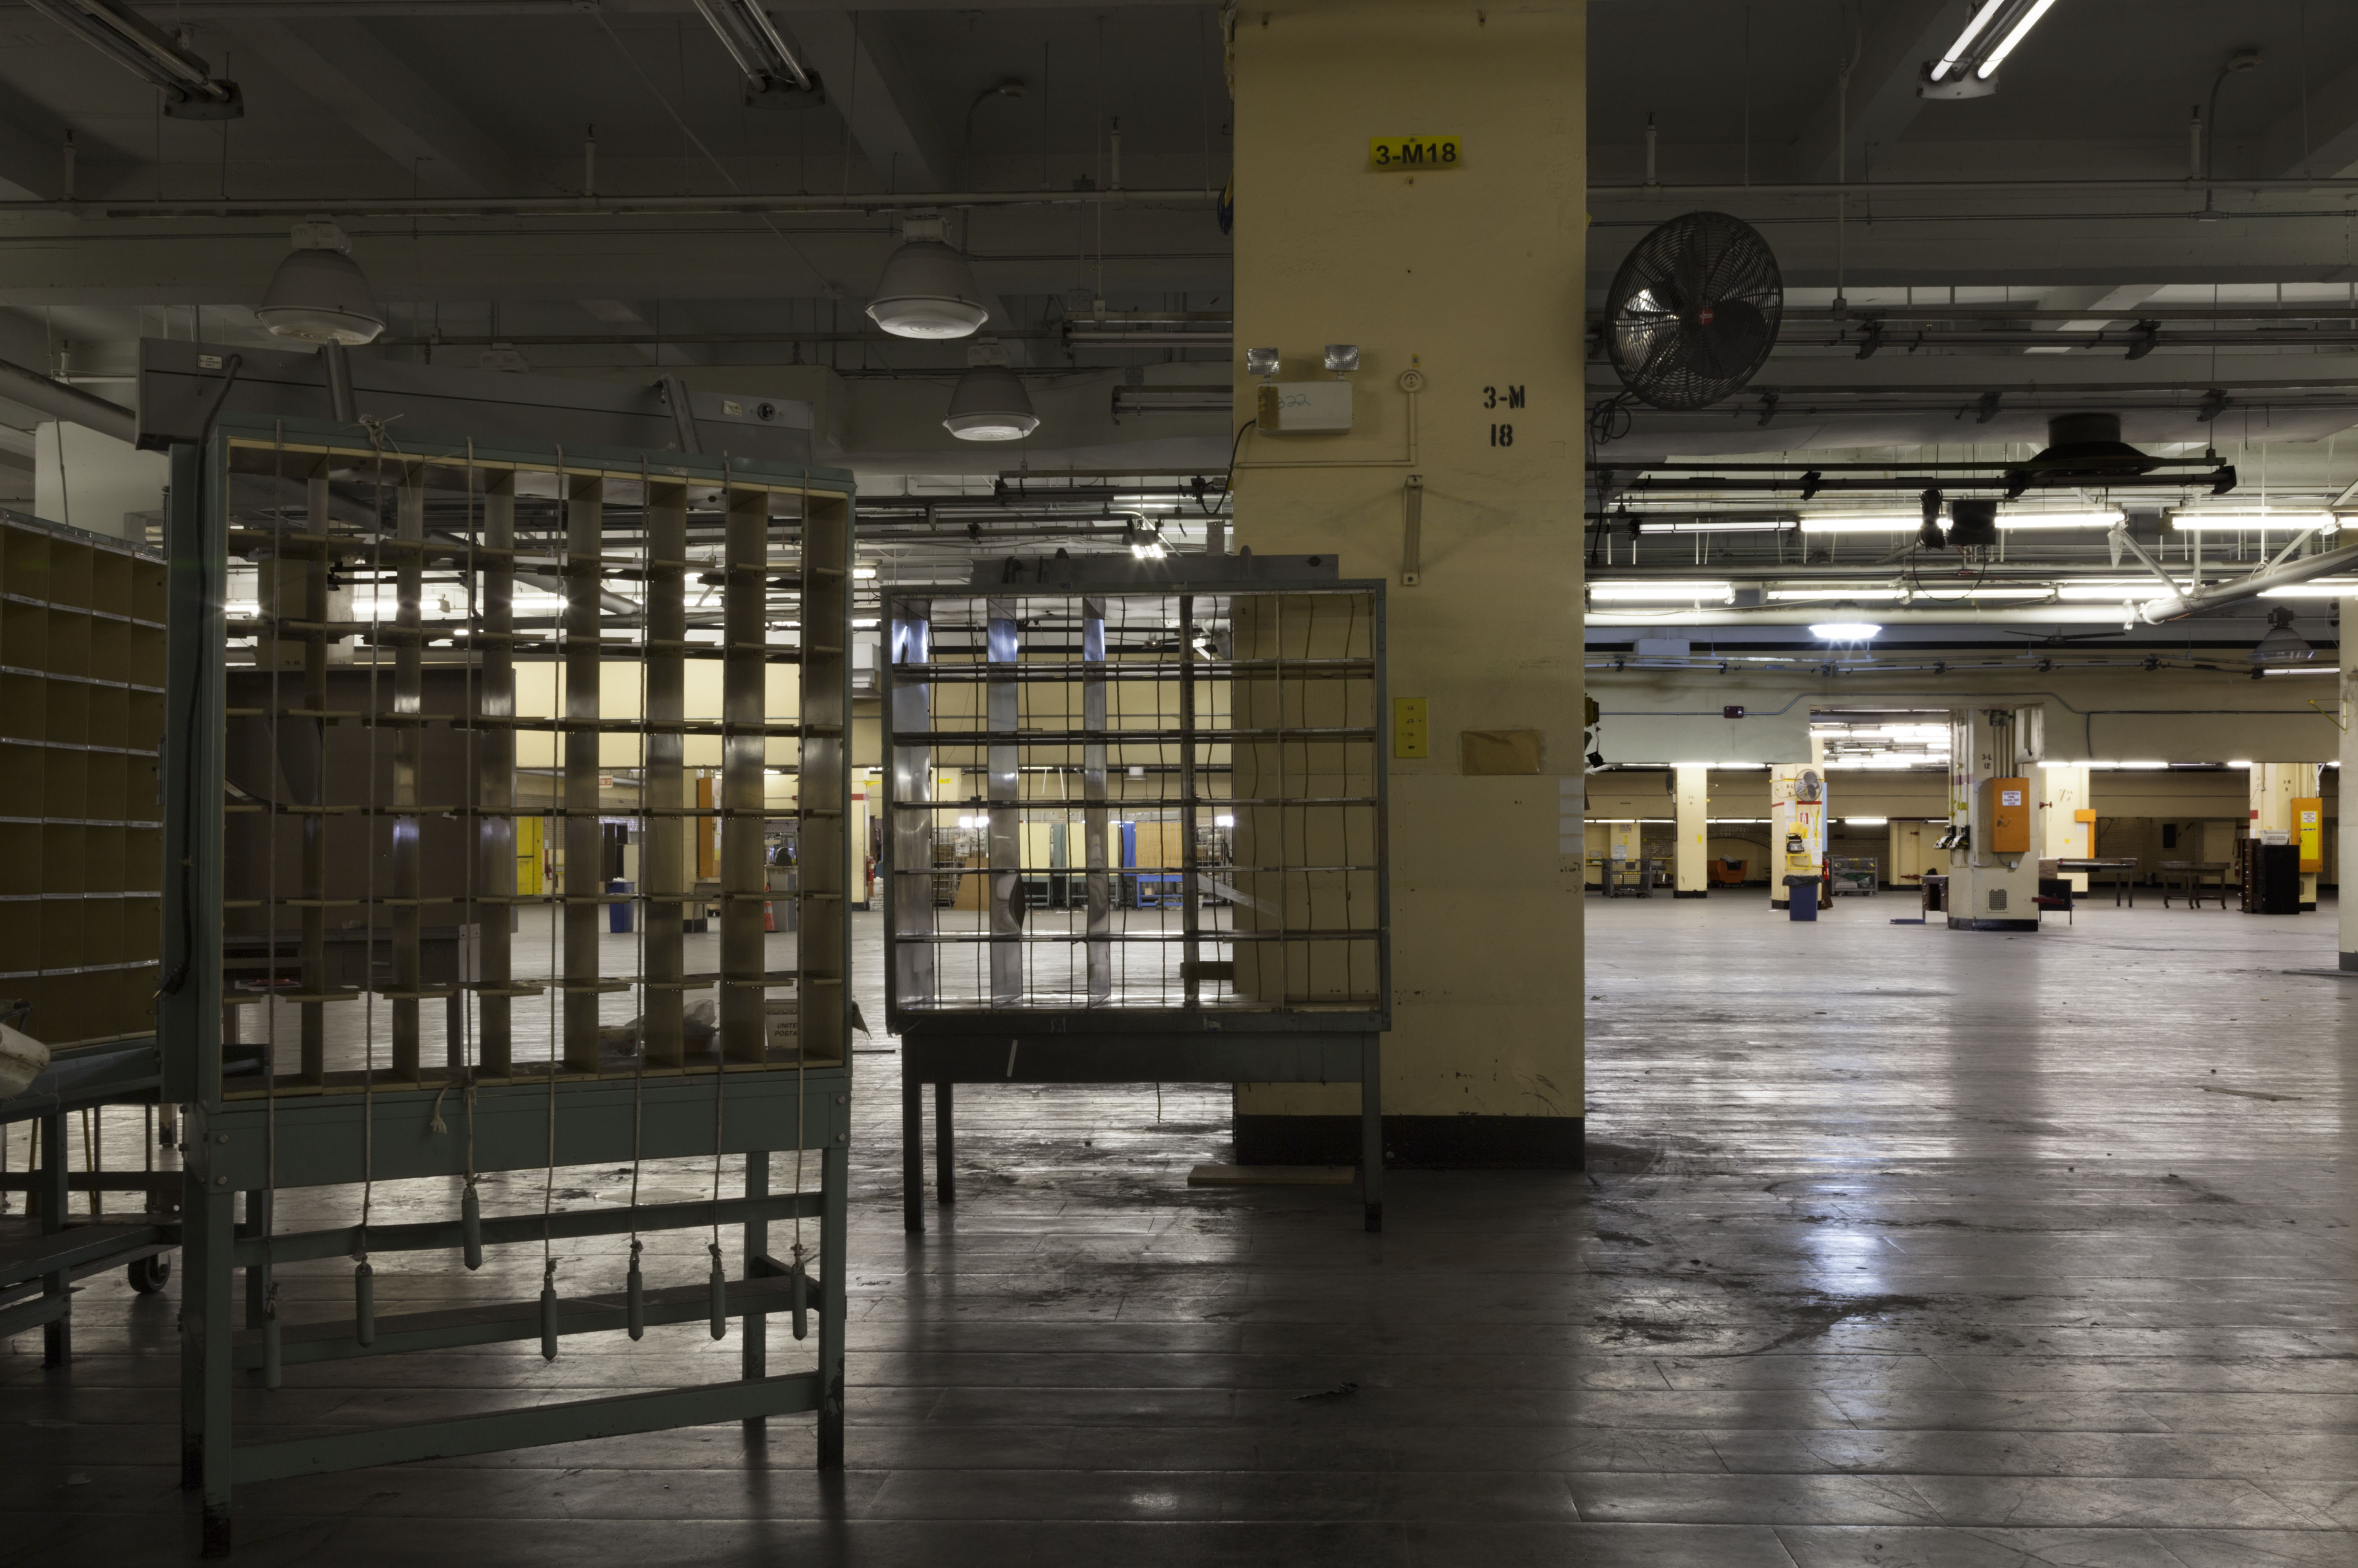 Farley post office\'s abandoned quarters explored in new exhibition ...